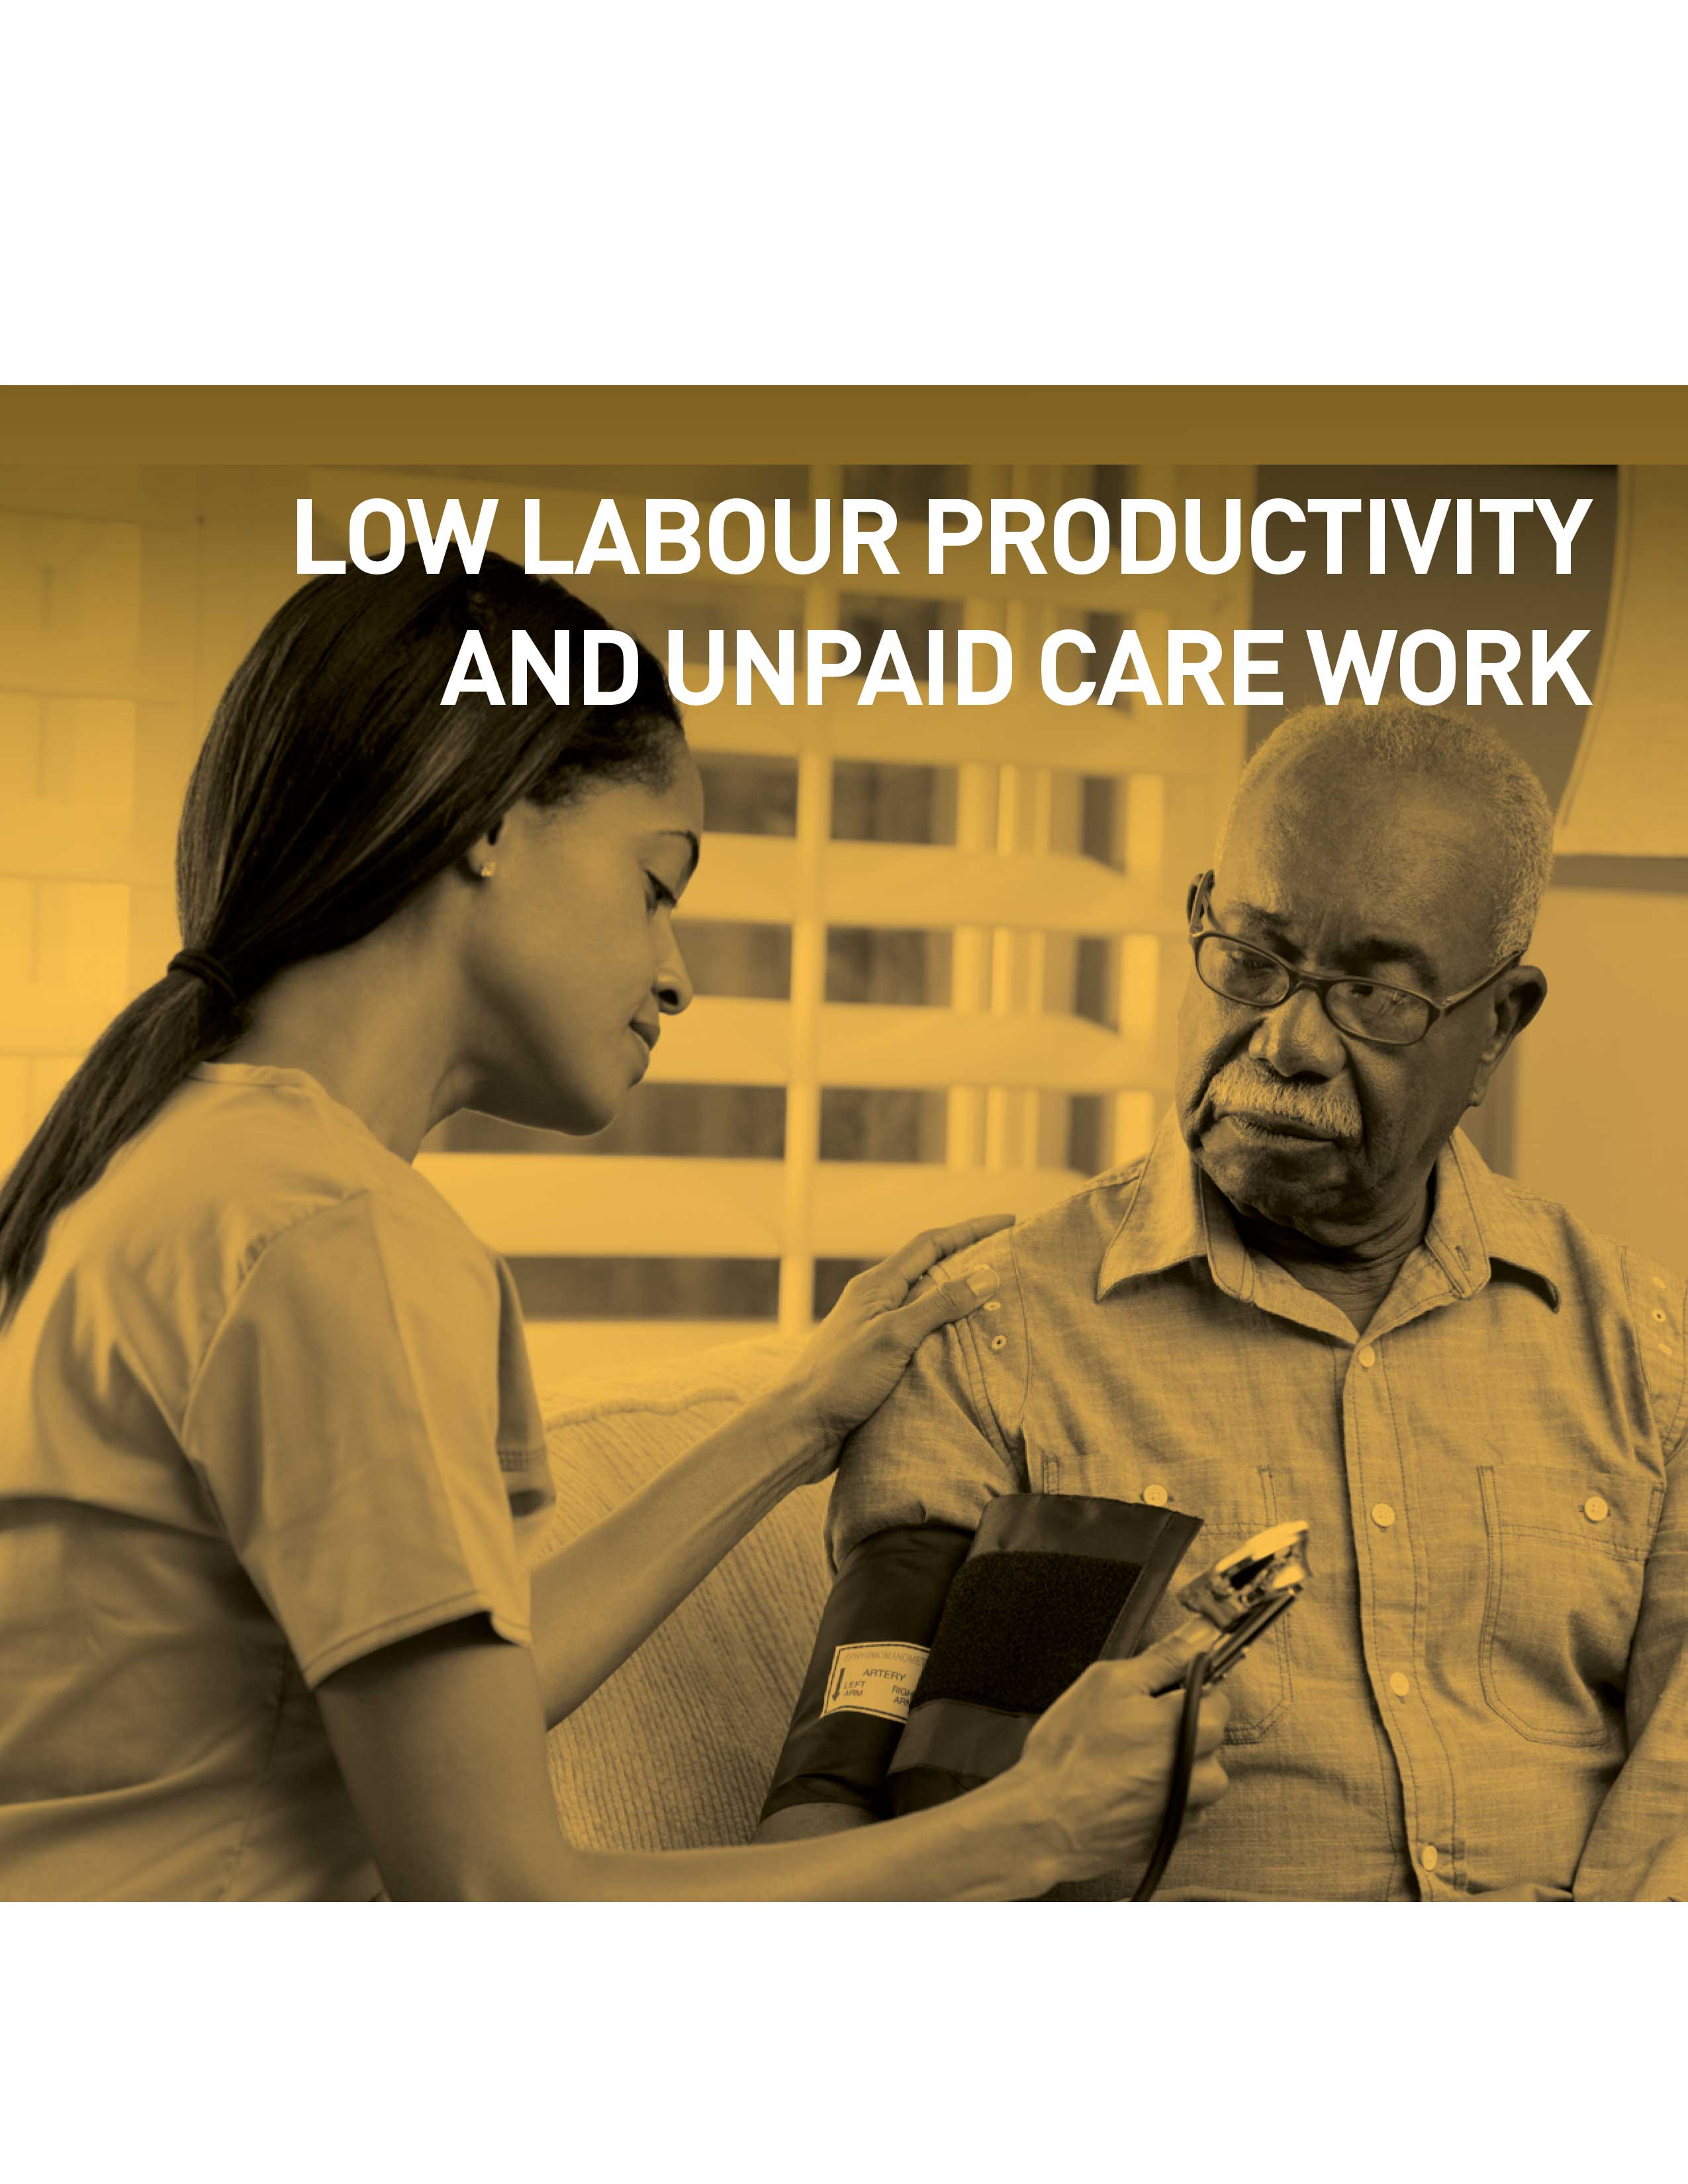 CAPRI Launches A Study on Low Labour Productivity And Unpaid Care Work